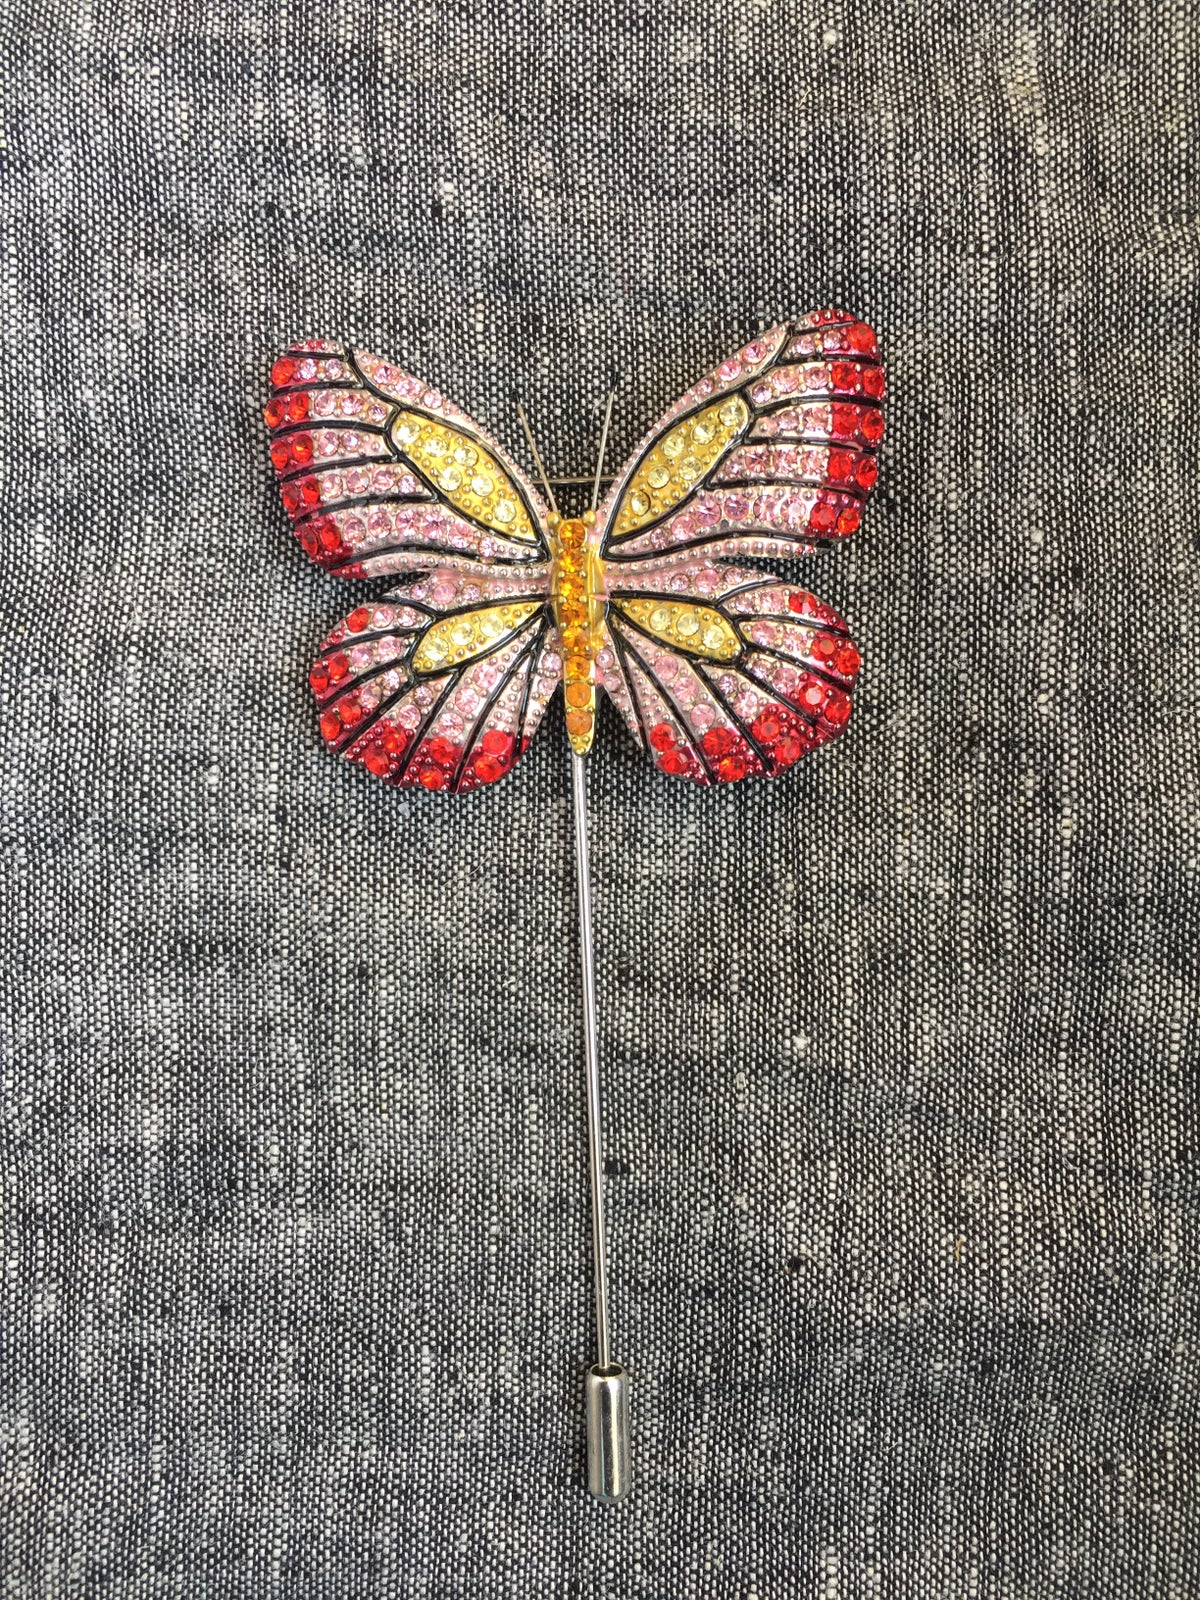 Image of Butterfly Lapel Pin (red, yellow, pink)